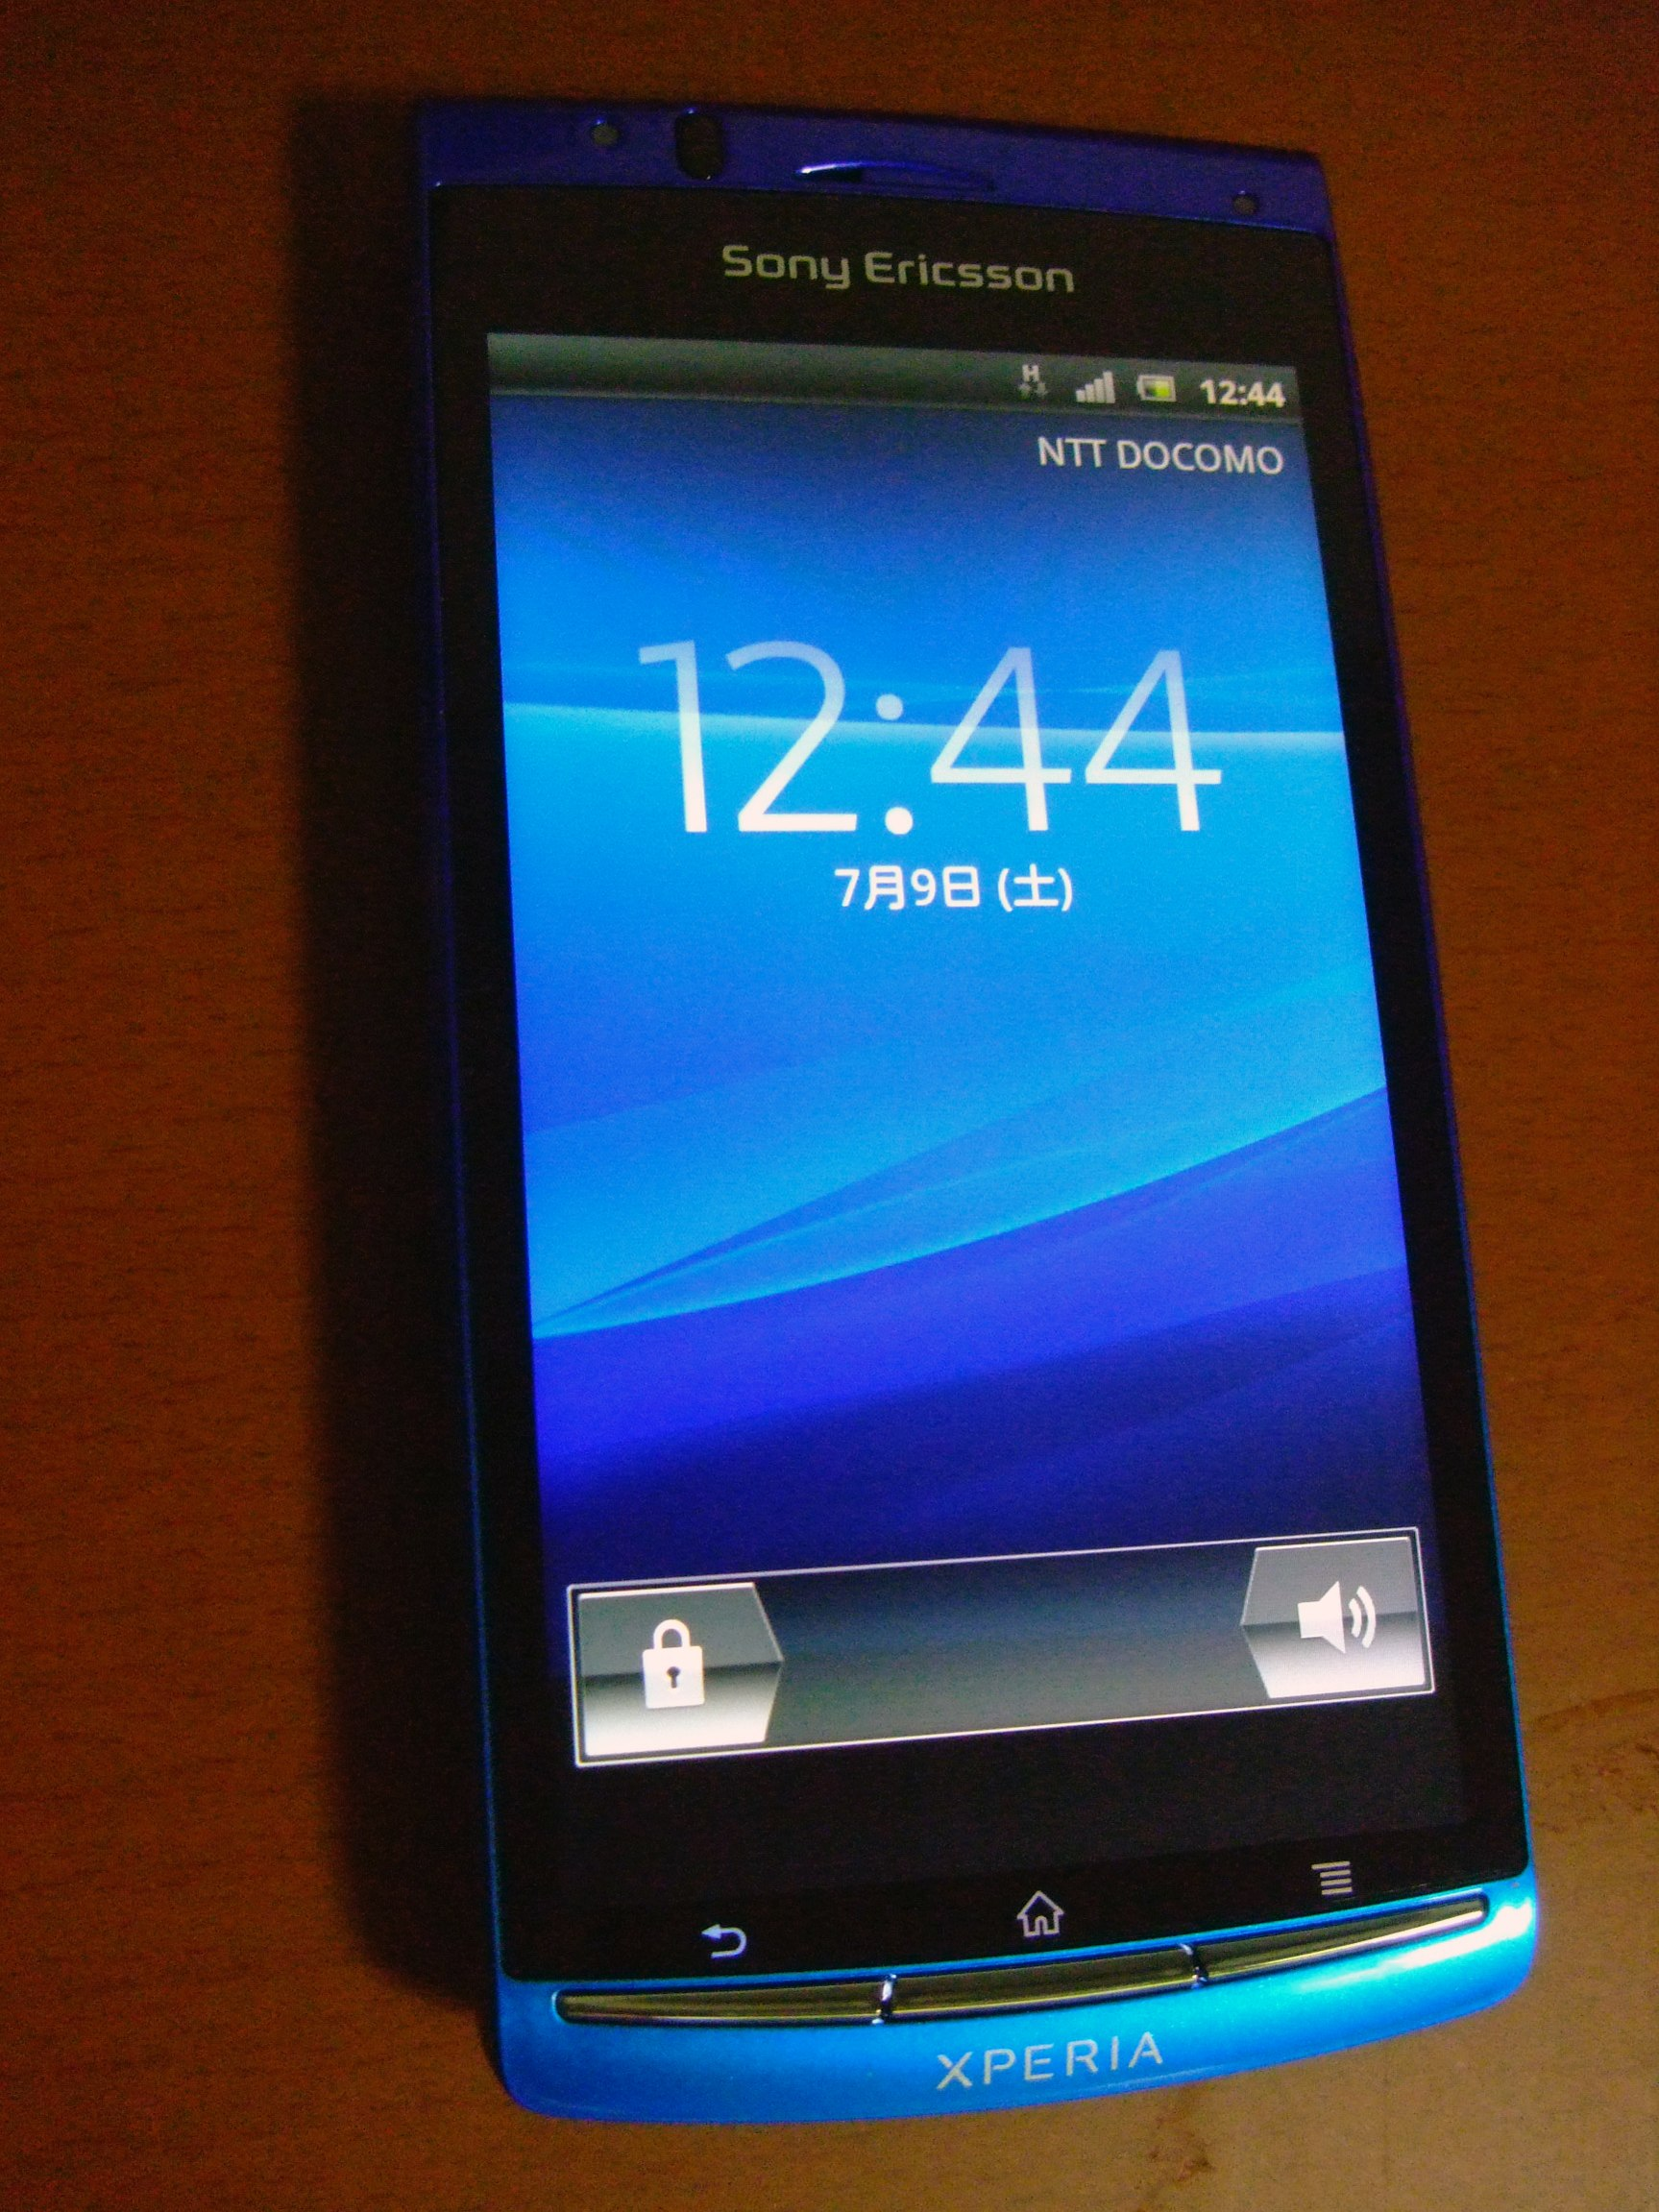 Sony Ericsson Xperia acro - The complete information and online sale